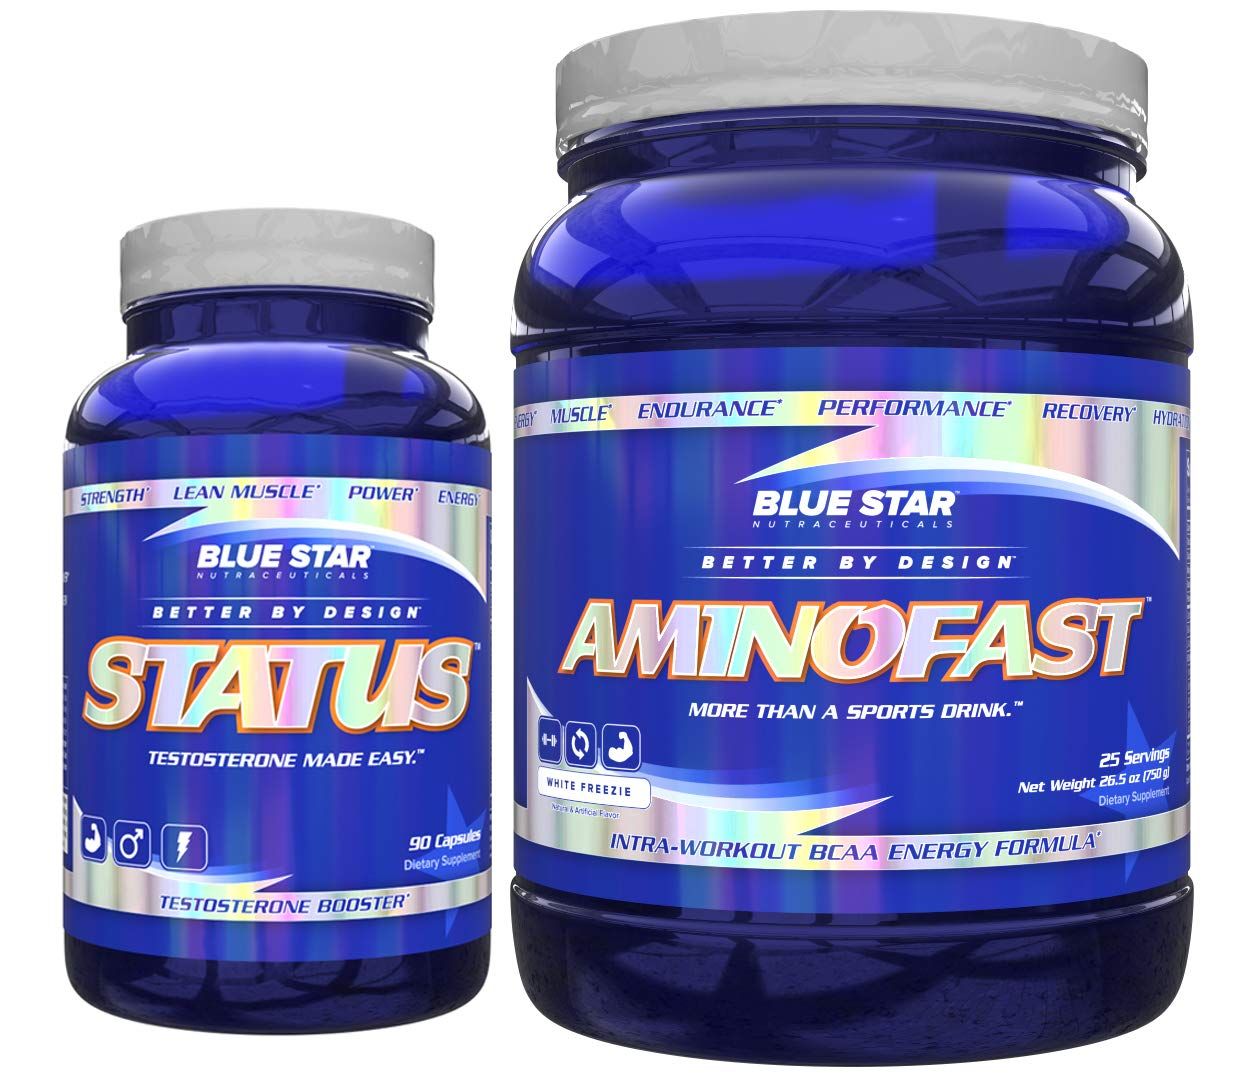 Blue Star Status and AminoFast: Professional Grade Testosterone and Micronutrient Support with Superior Intra-Workout BCAA Energy and Hydration Bundle (White Freezie)